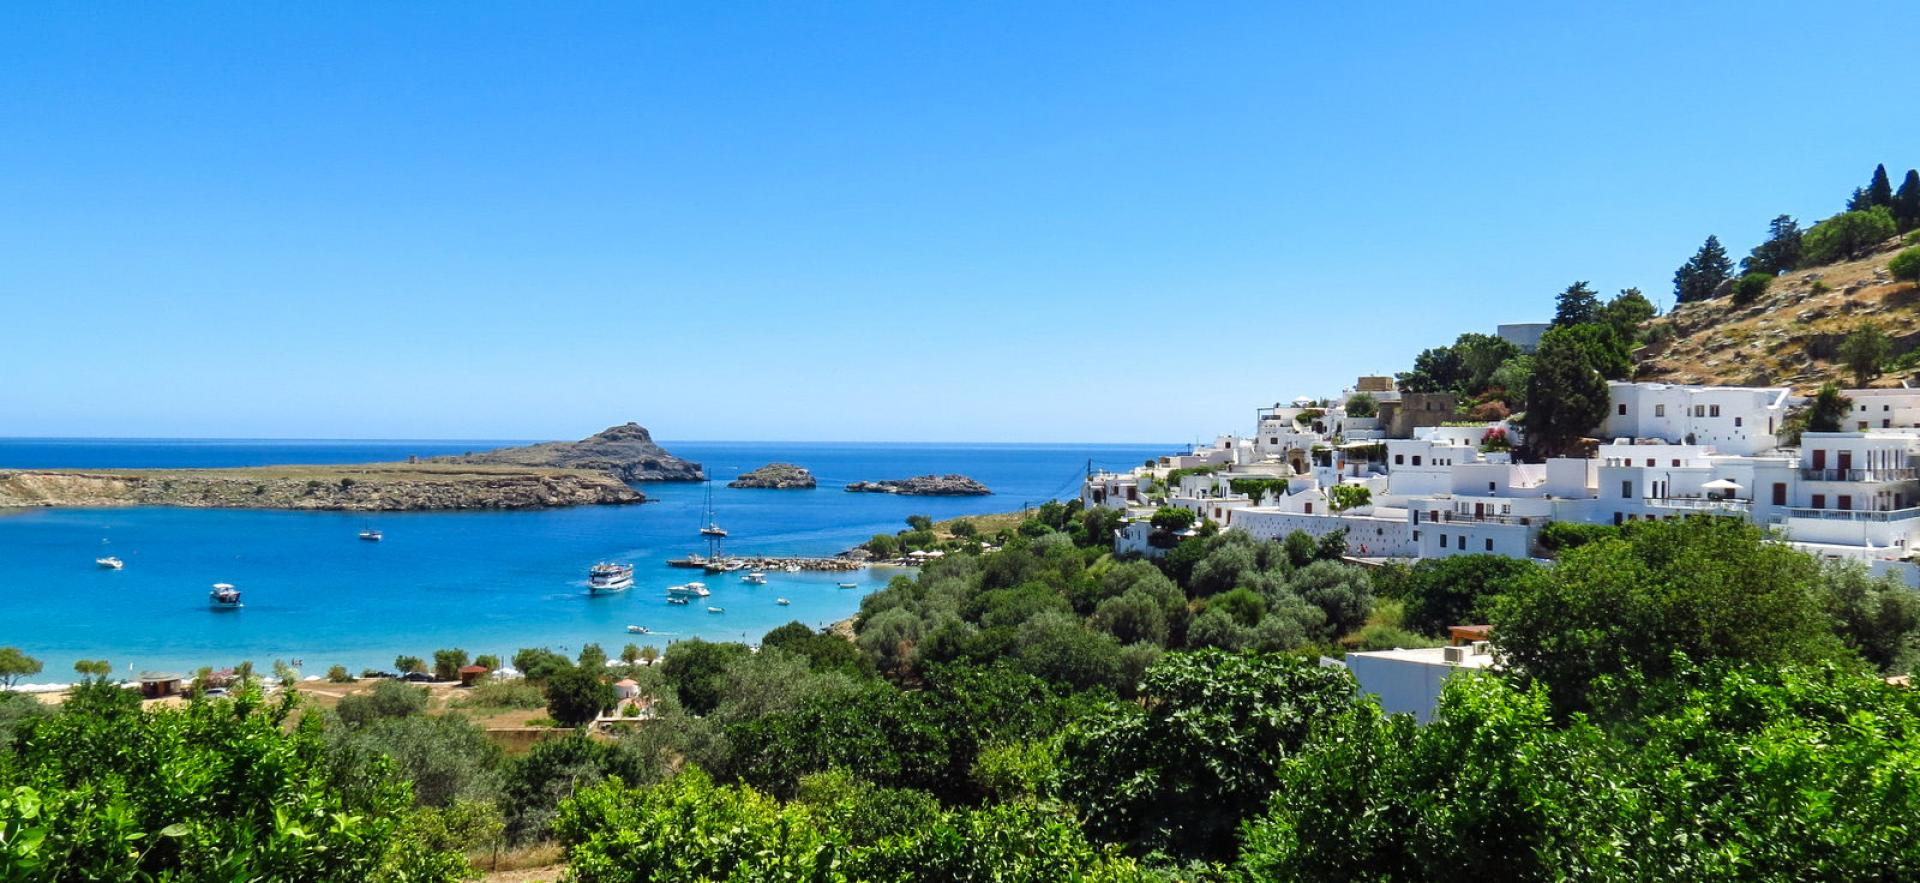 book_a_bus_trip_to_Lindos_with_rhodes_rental_services_03